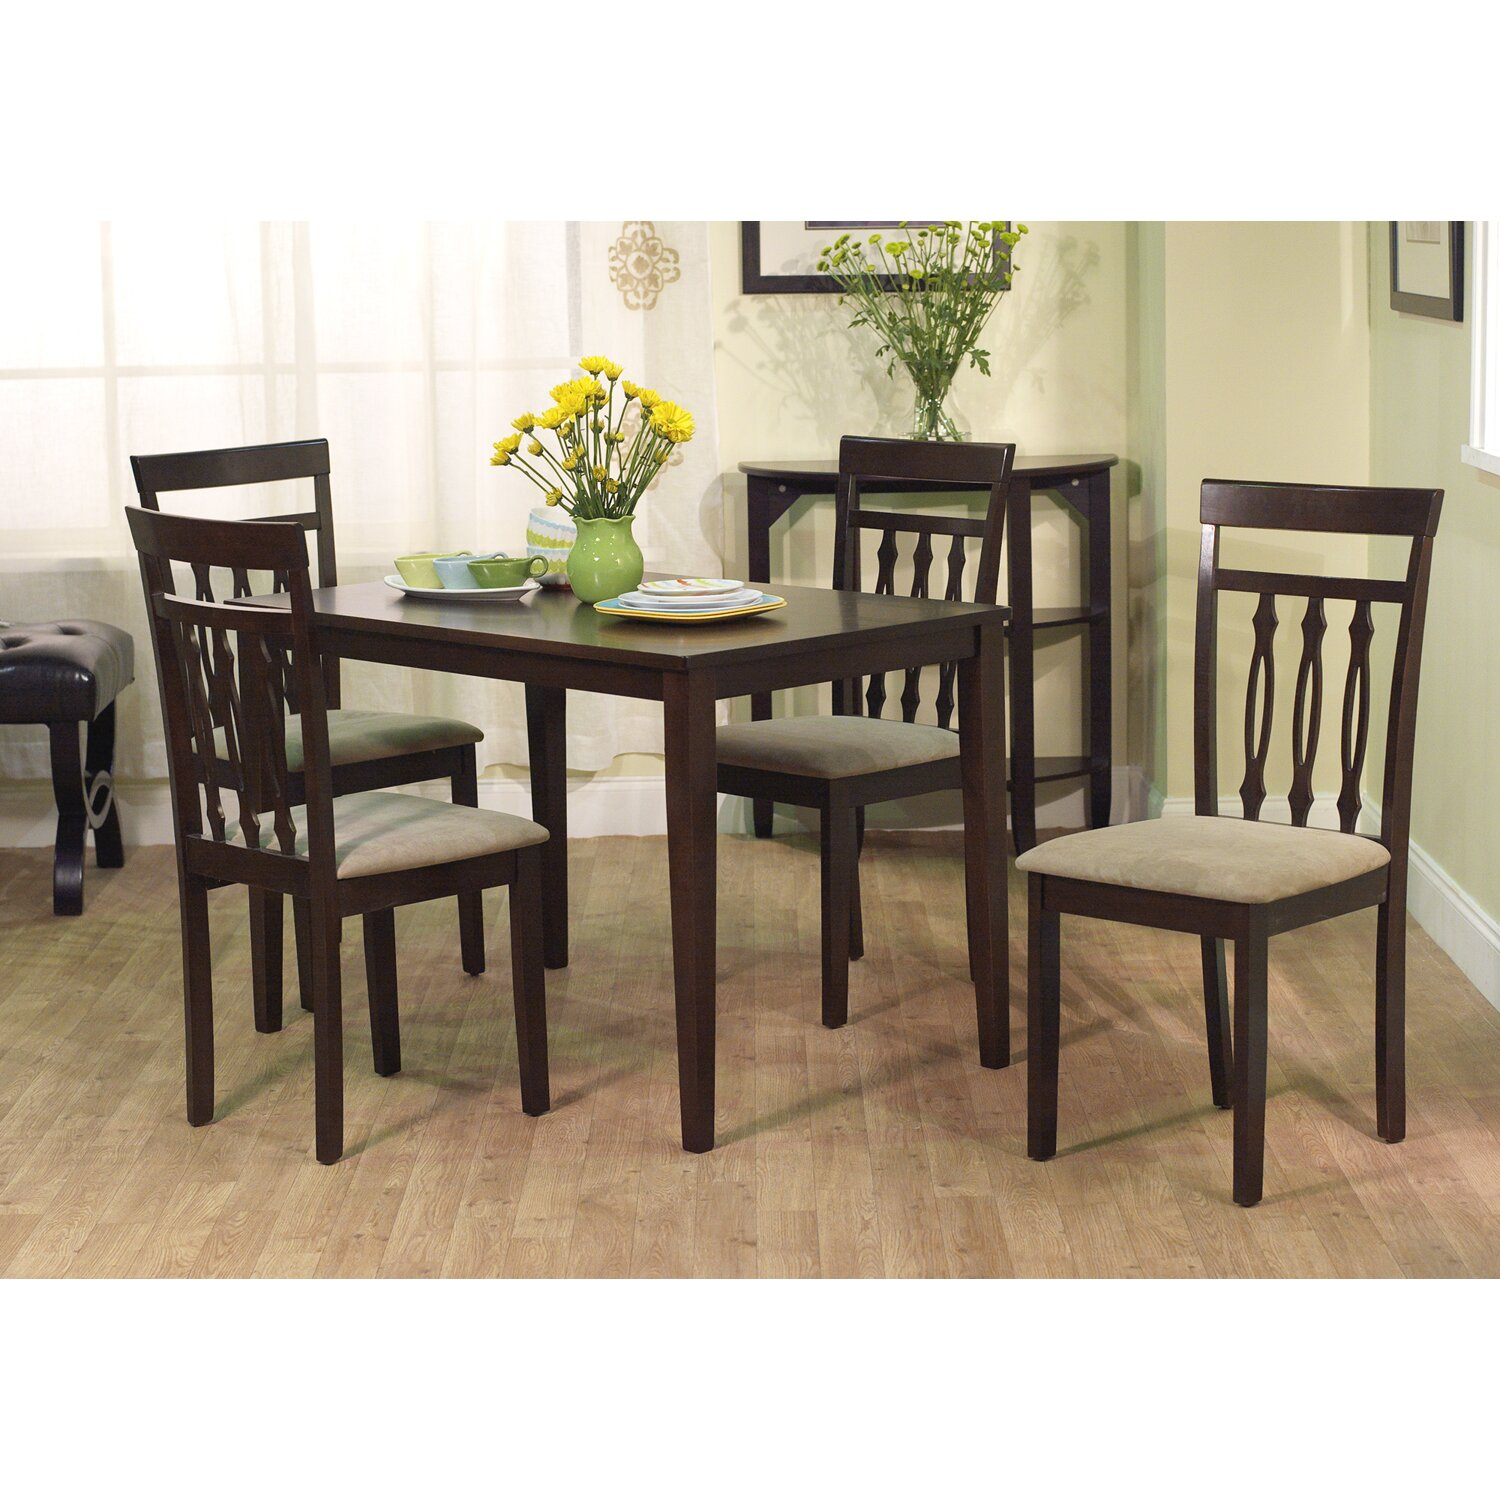 August grove vivien 5 piece dining set reviews wayfair for 5 piece dining set